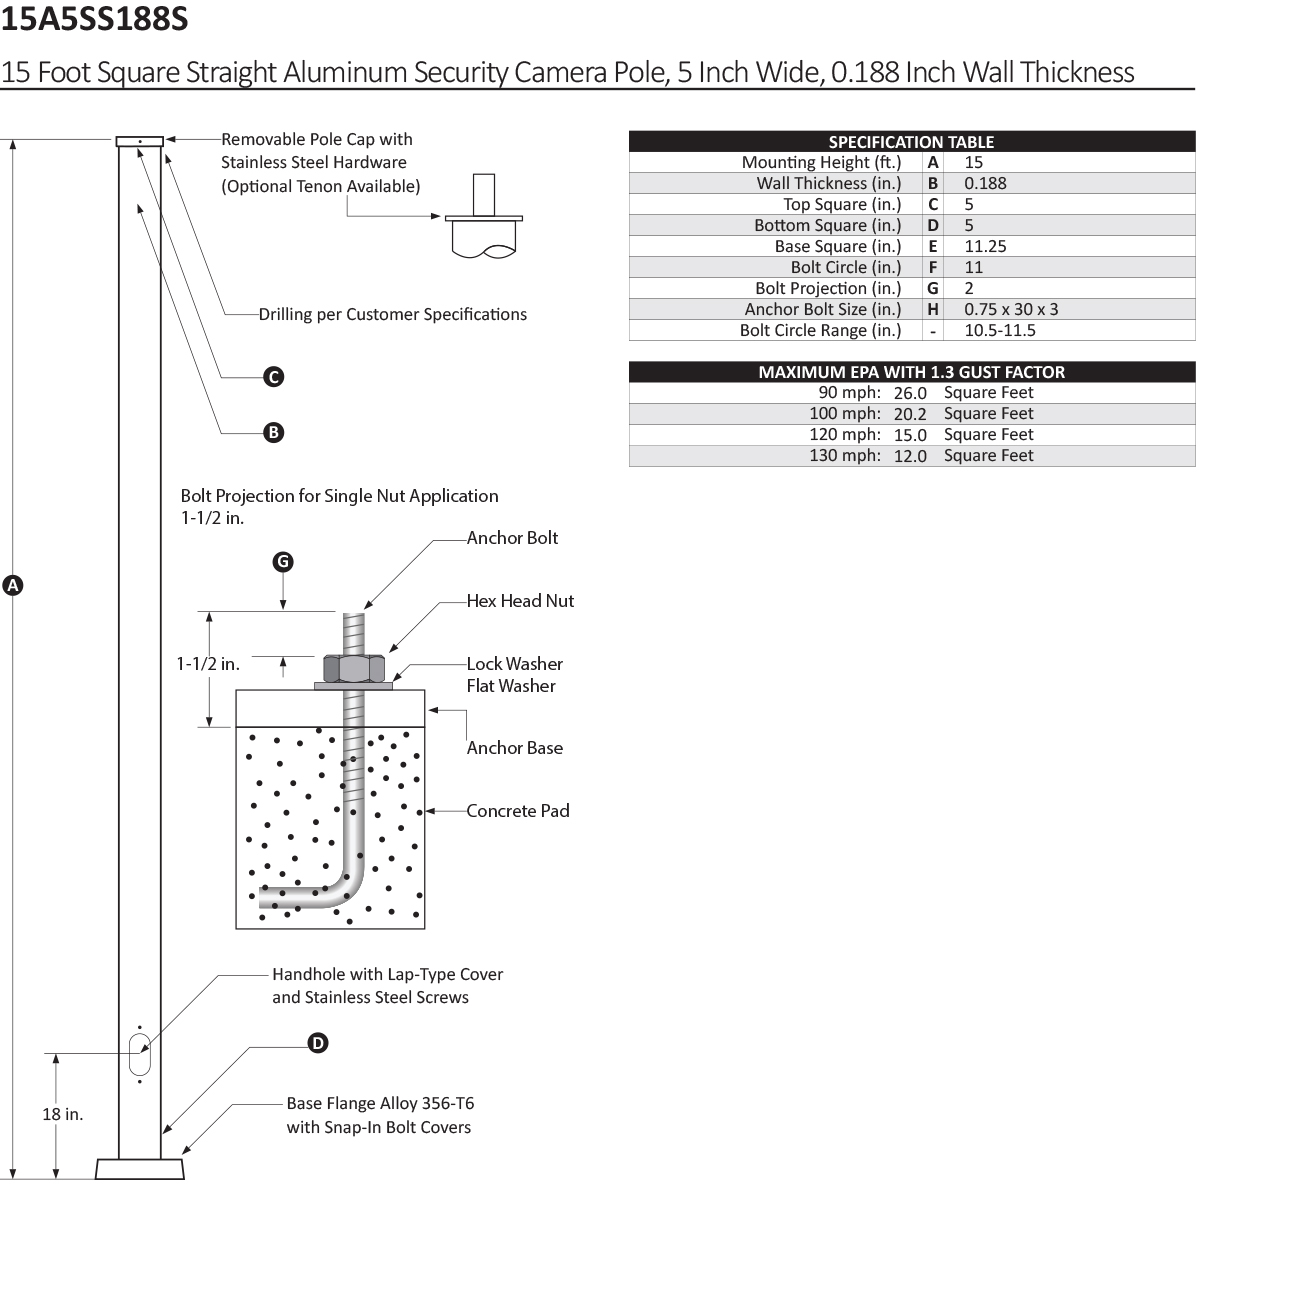 15 Foot Square Straight Aluminum Security Camera Pole, 5 Inch Wide, 0.188 Inch Wall Thickness